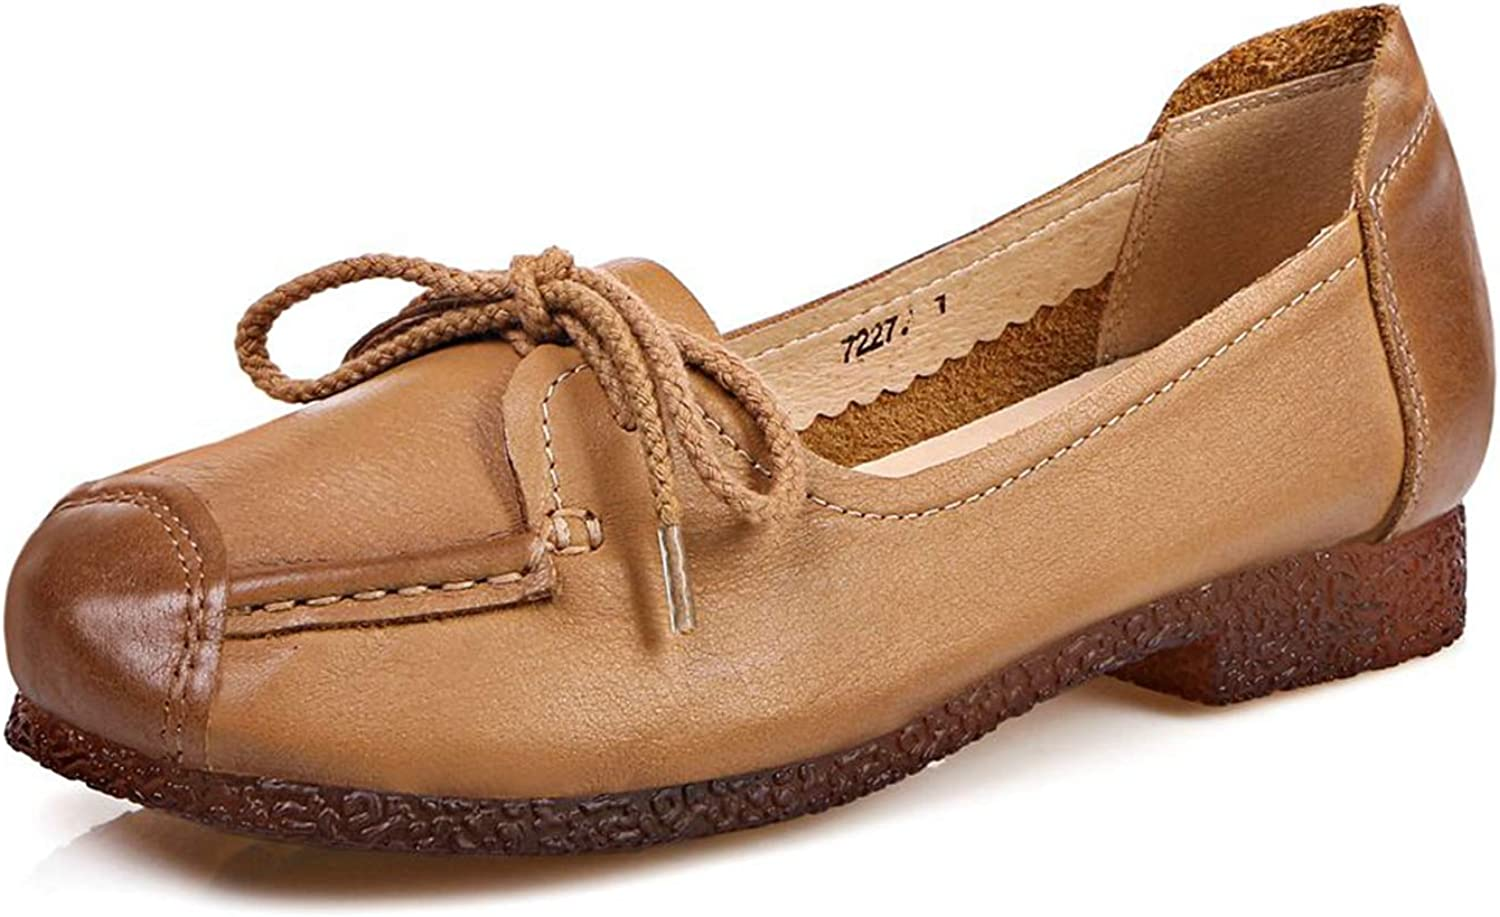 VIMISAOI Women's Genuine Leather Casual Lace-up Soft Soles Flat Loafer shoes